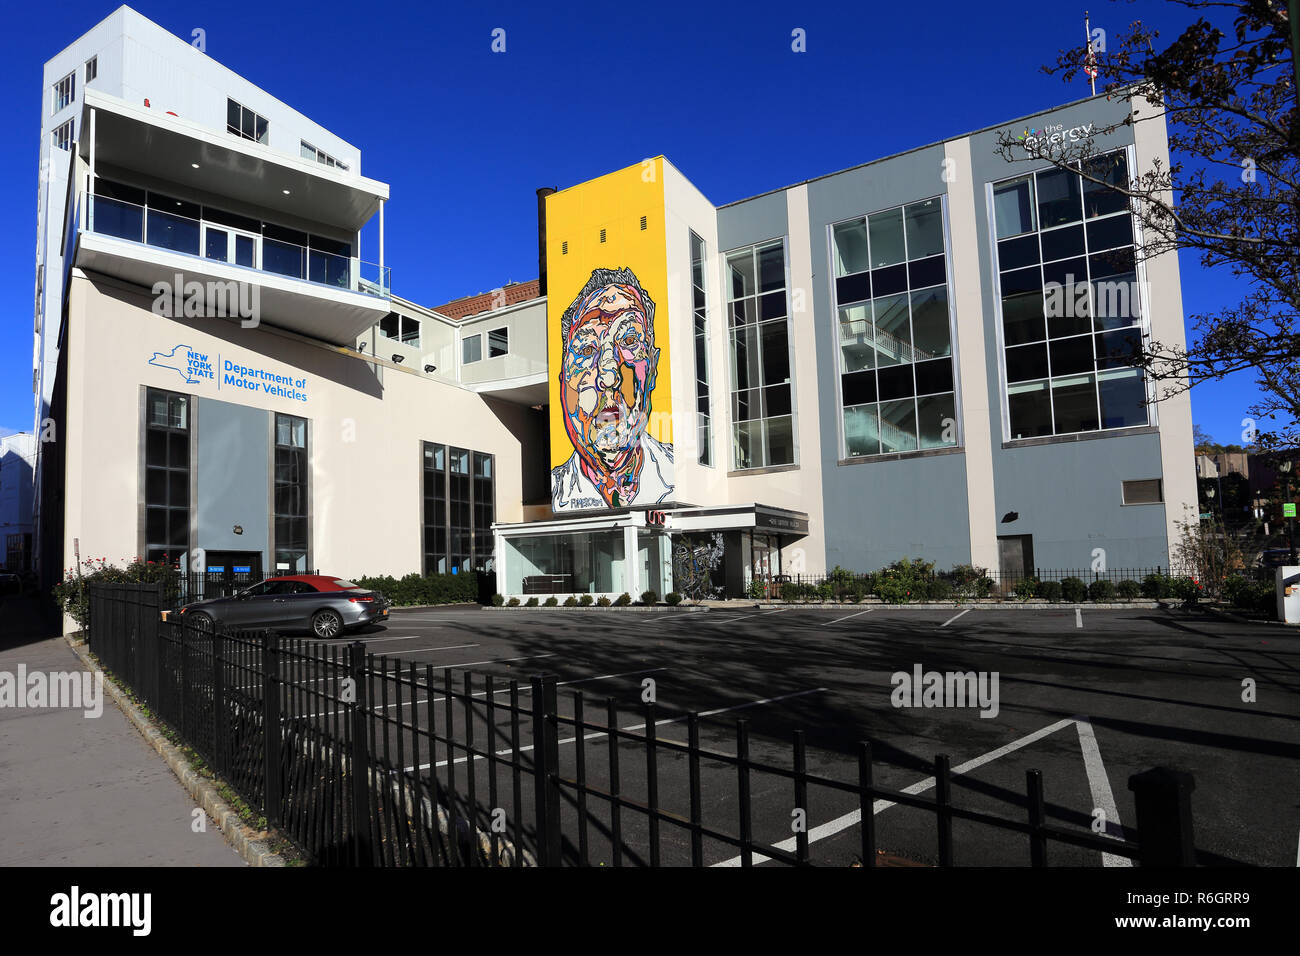 Department of Motor Vehicles downtown Yonkers New York - Stock Image